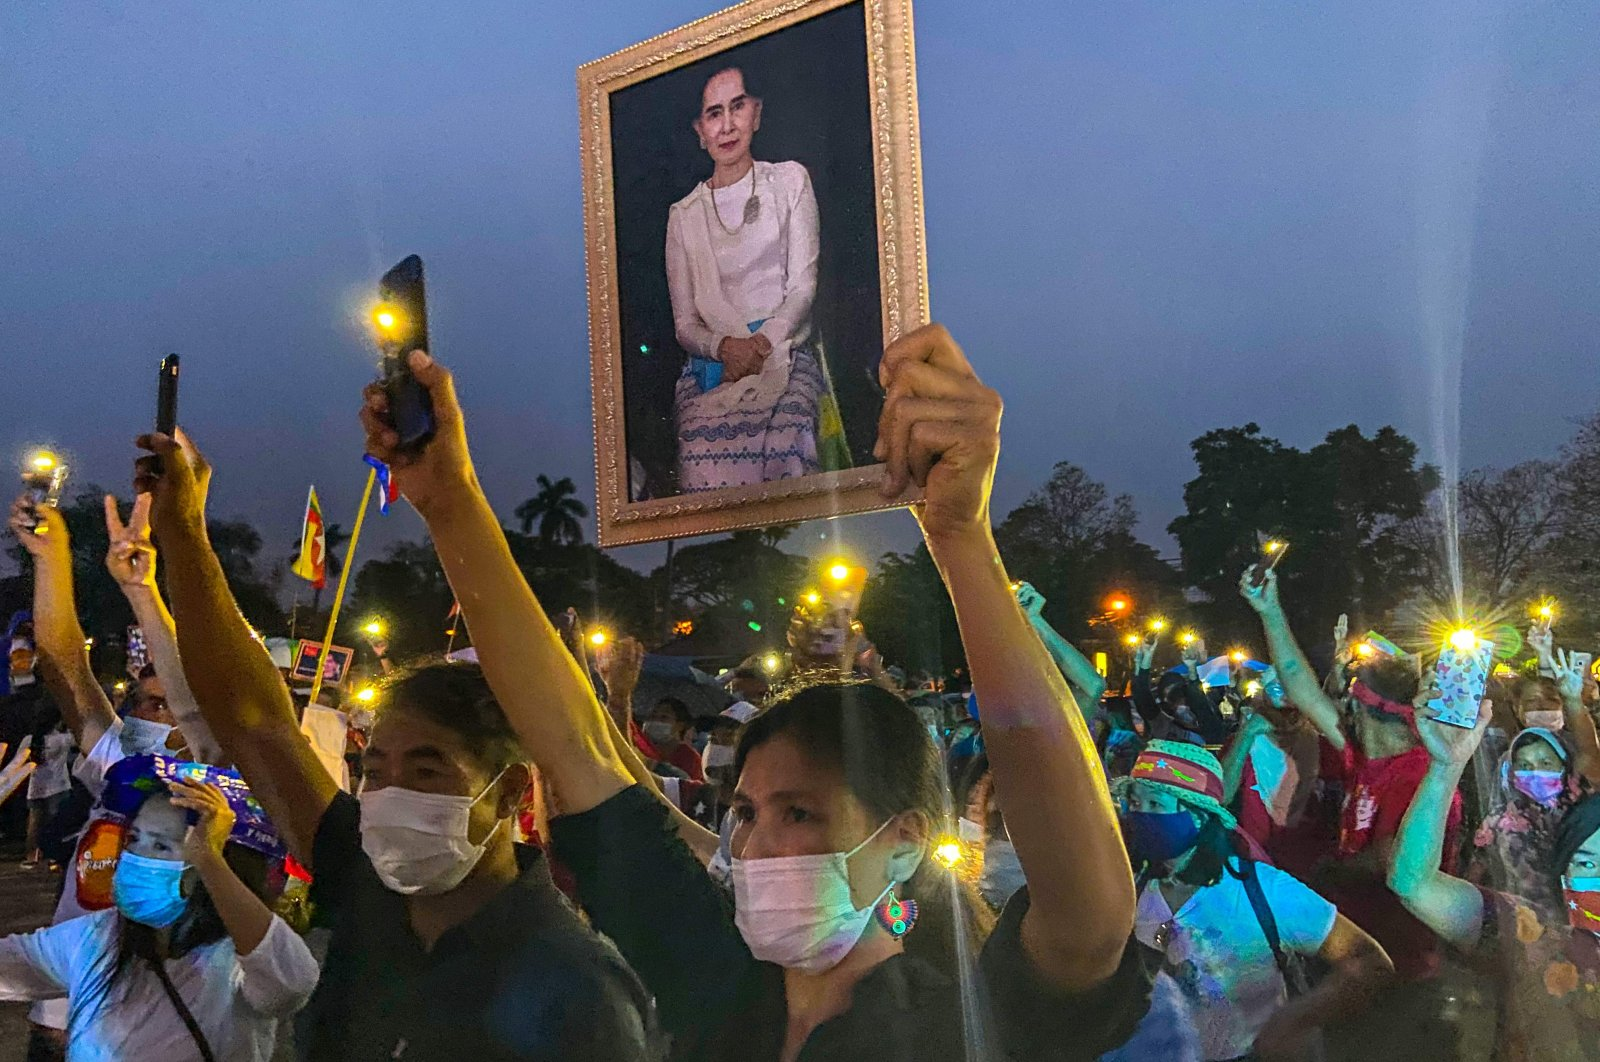 A Myanmar migrant living in Thailand holds a portrait of detained civilian leader Aung San Suu Kyi while others hold up their mobile phone lights during a night protest against the military coup in their homeland, Chiang Mai, Thailand, April 4, 2021. (AFP Photo)